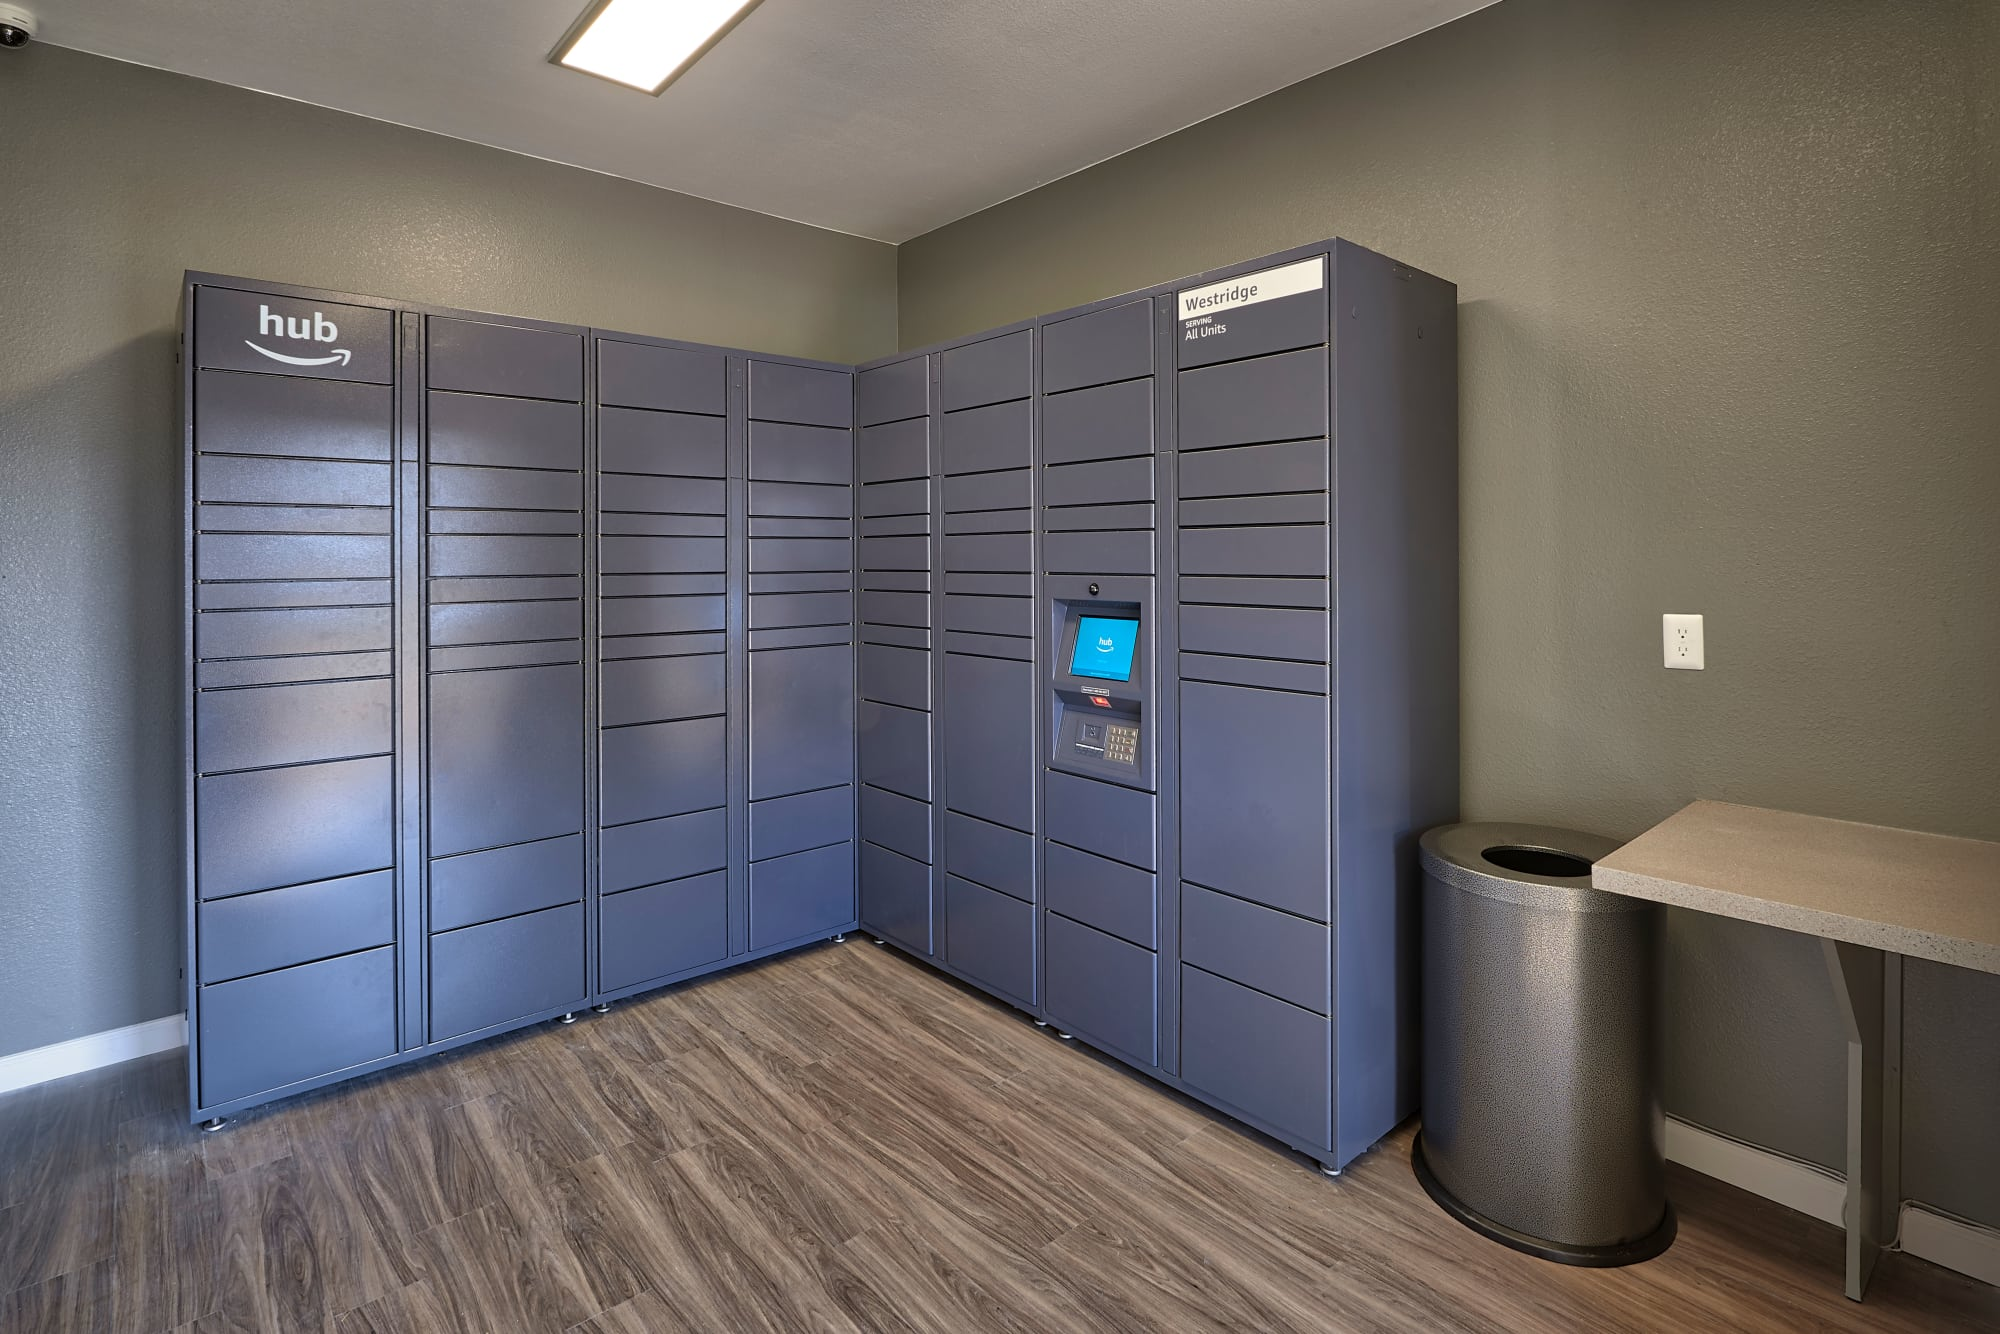 24-hour package lockers with Amazon HUB at Westridge Apartments in Aurora, Colorado